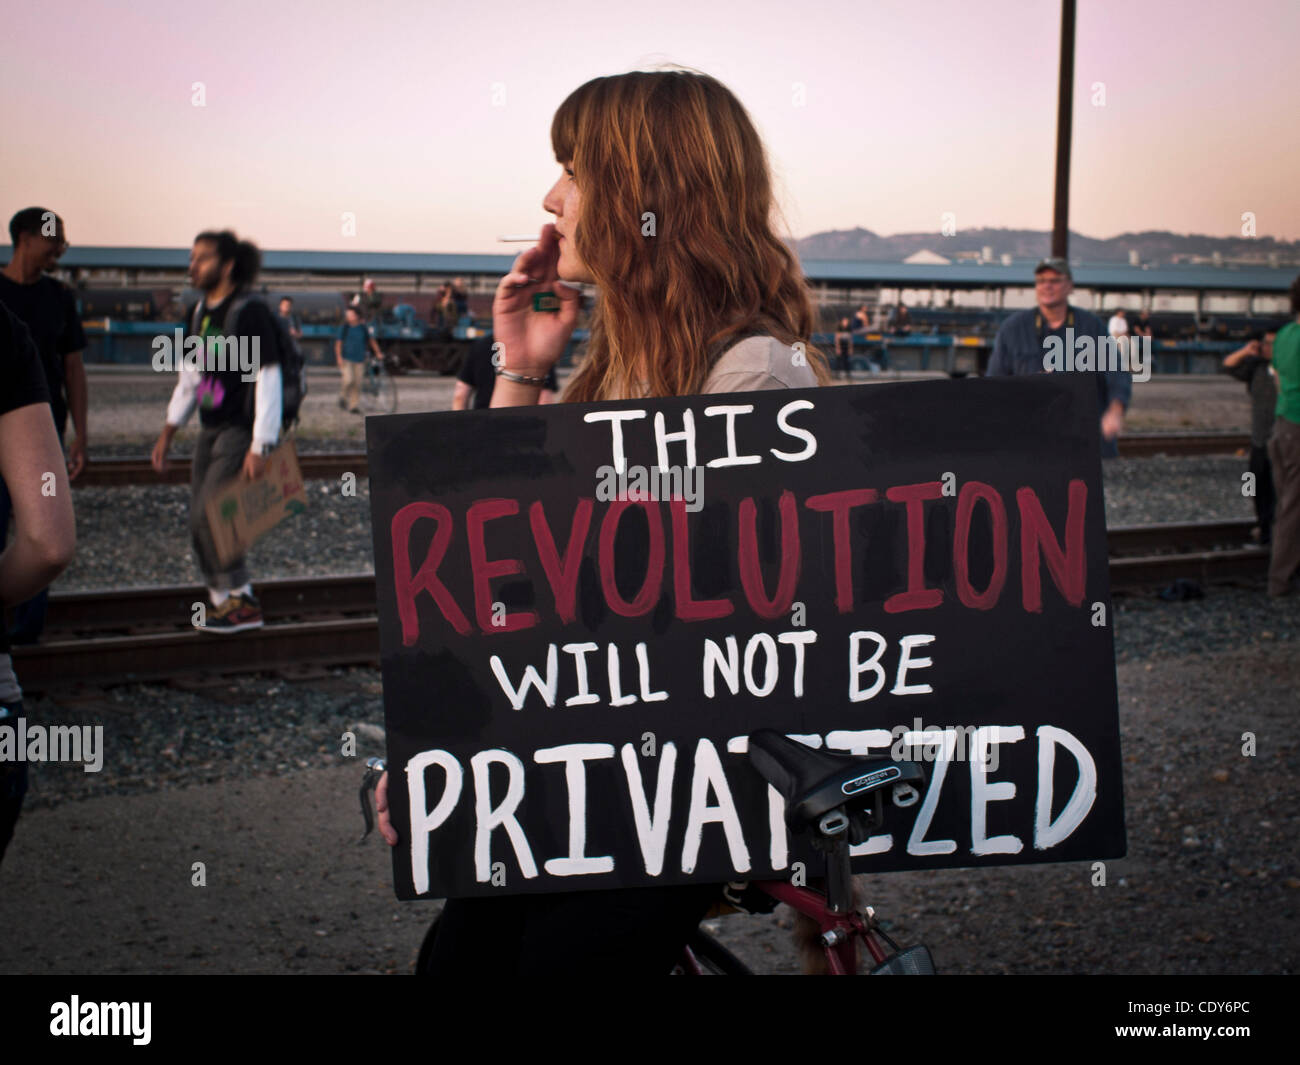 Nov. 02, 2011 - Oakland, California, U.S. - A Demonstrator holds a sign 'The Revolution Will Not Be Privatized' - Stock Image